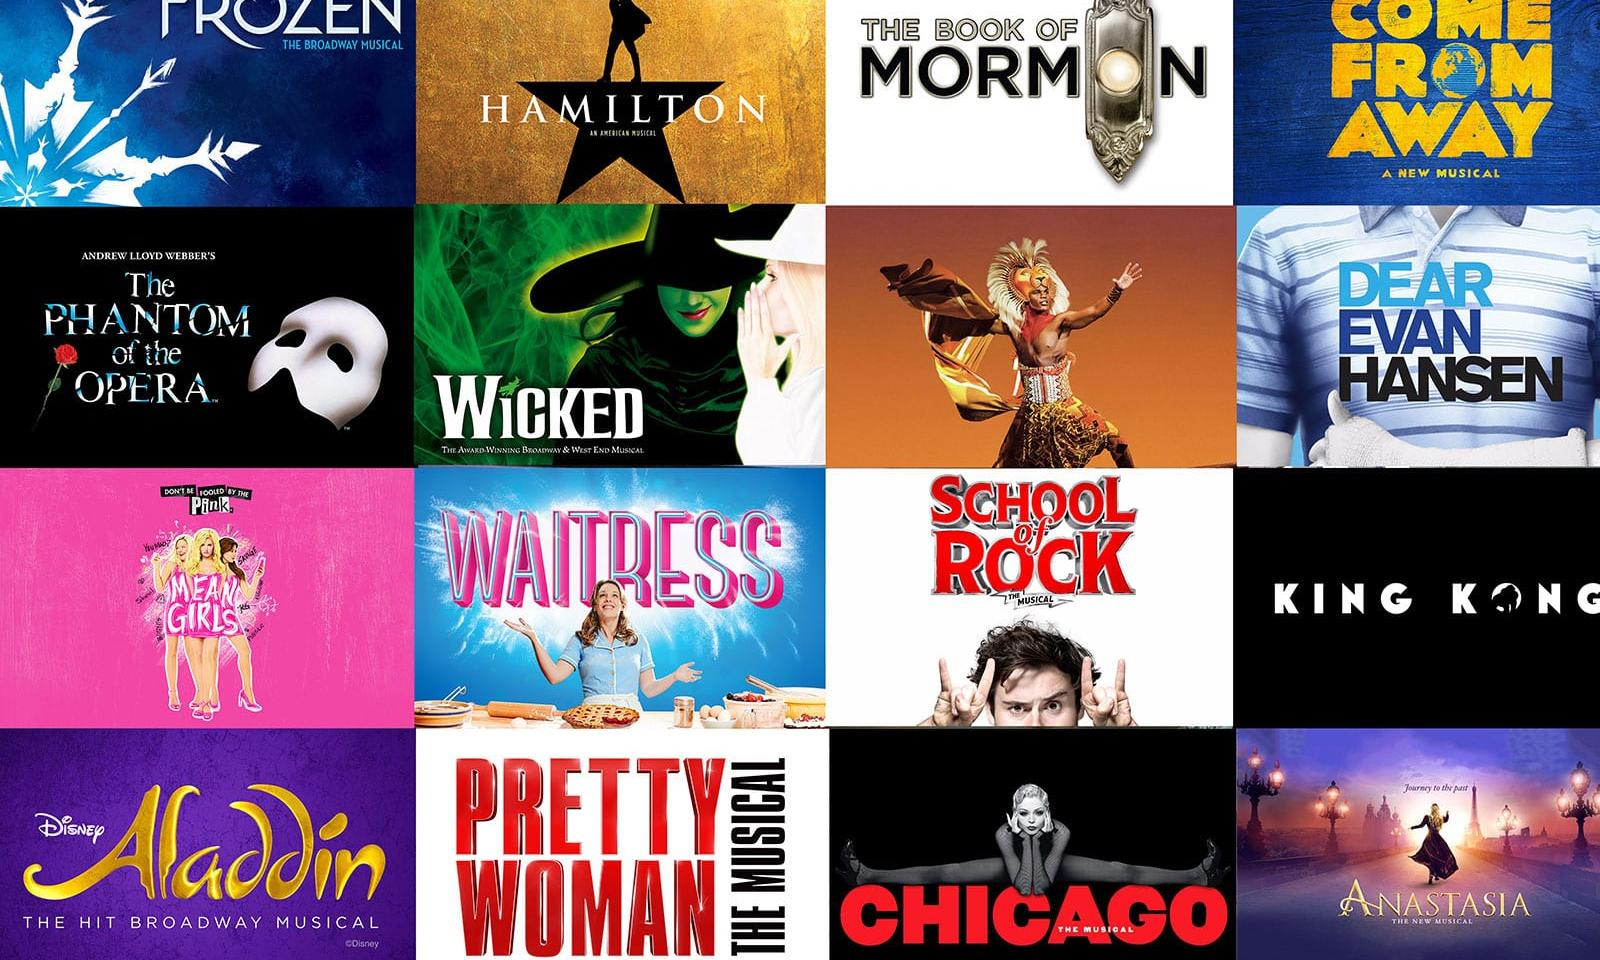 Broadway Shows Open On Christmas Day 2020 ▷ Broadway Shows in NYC | New York Broadway Shows 2020